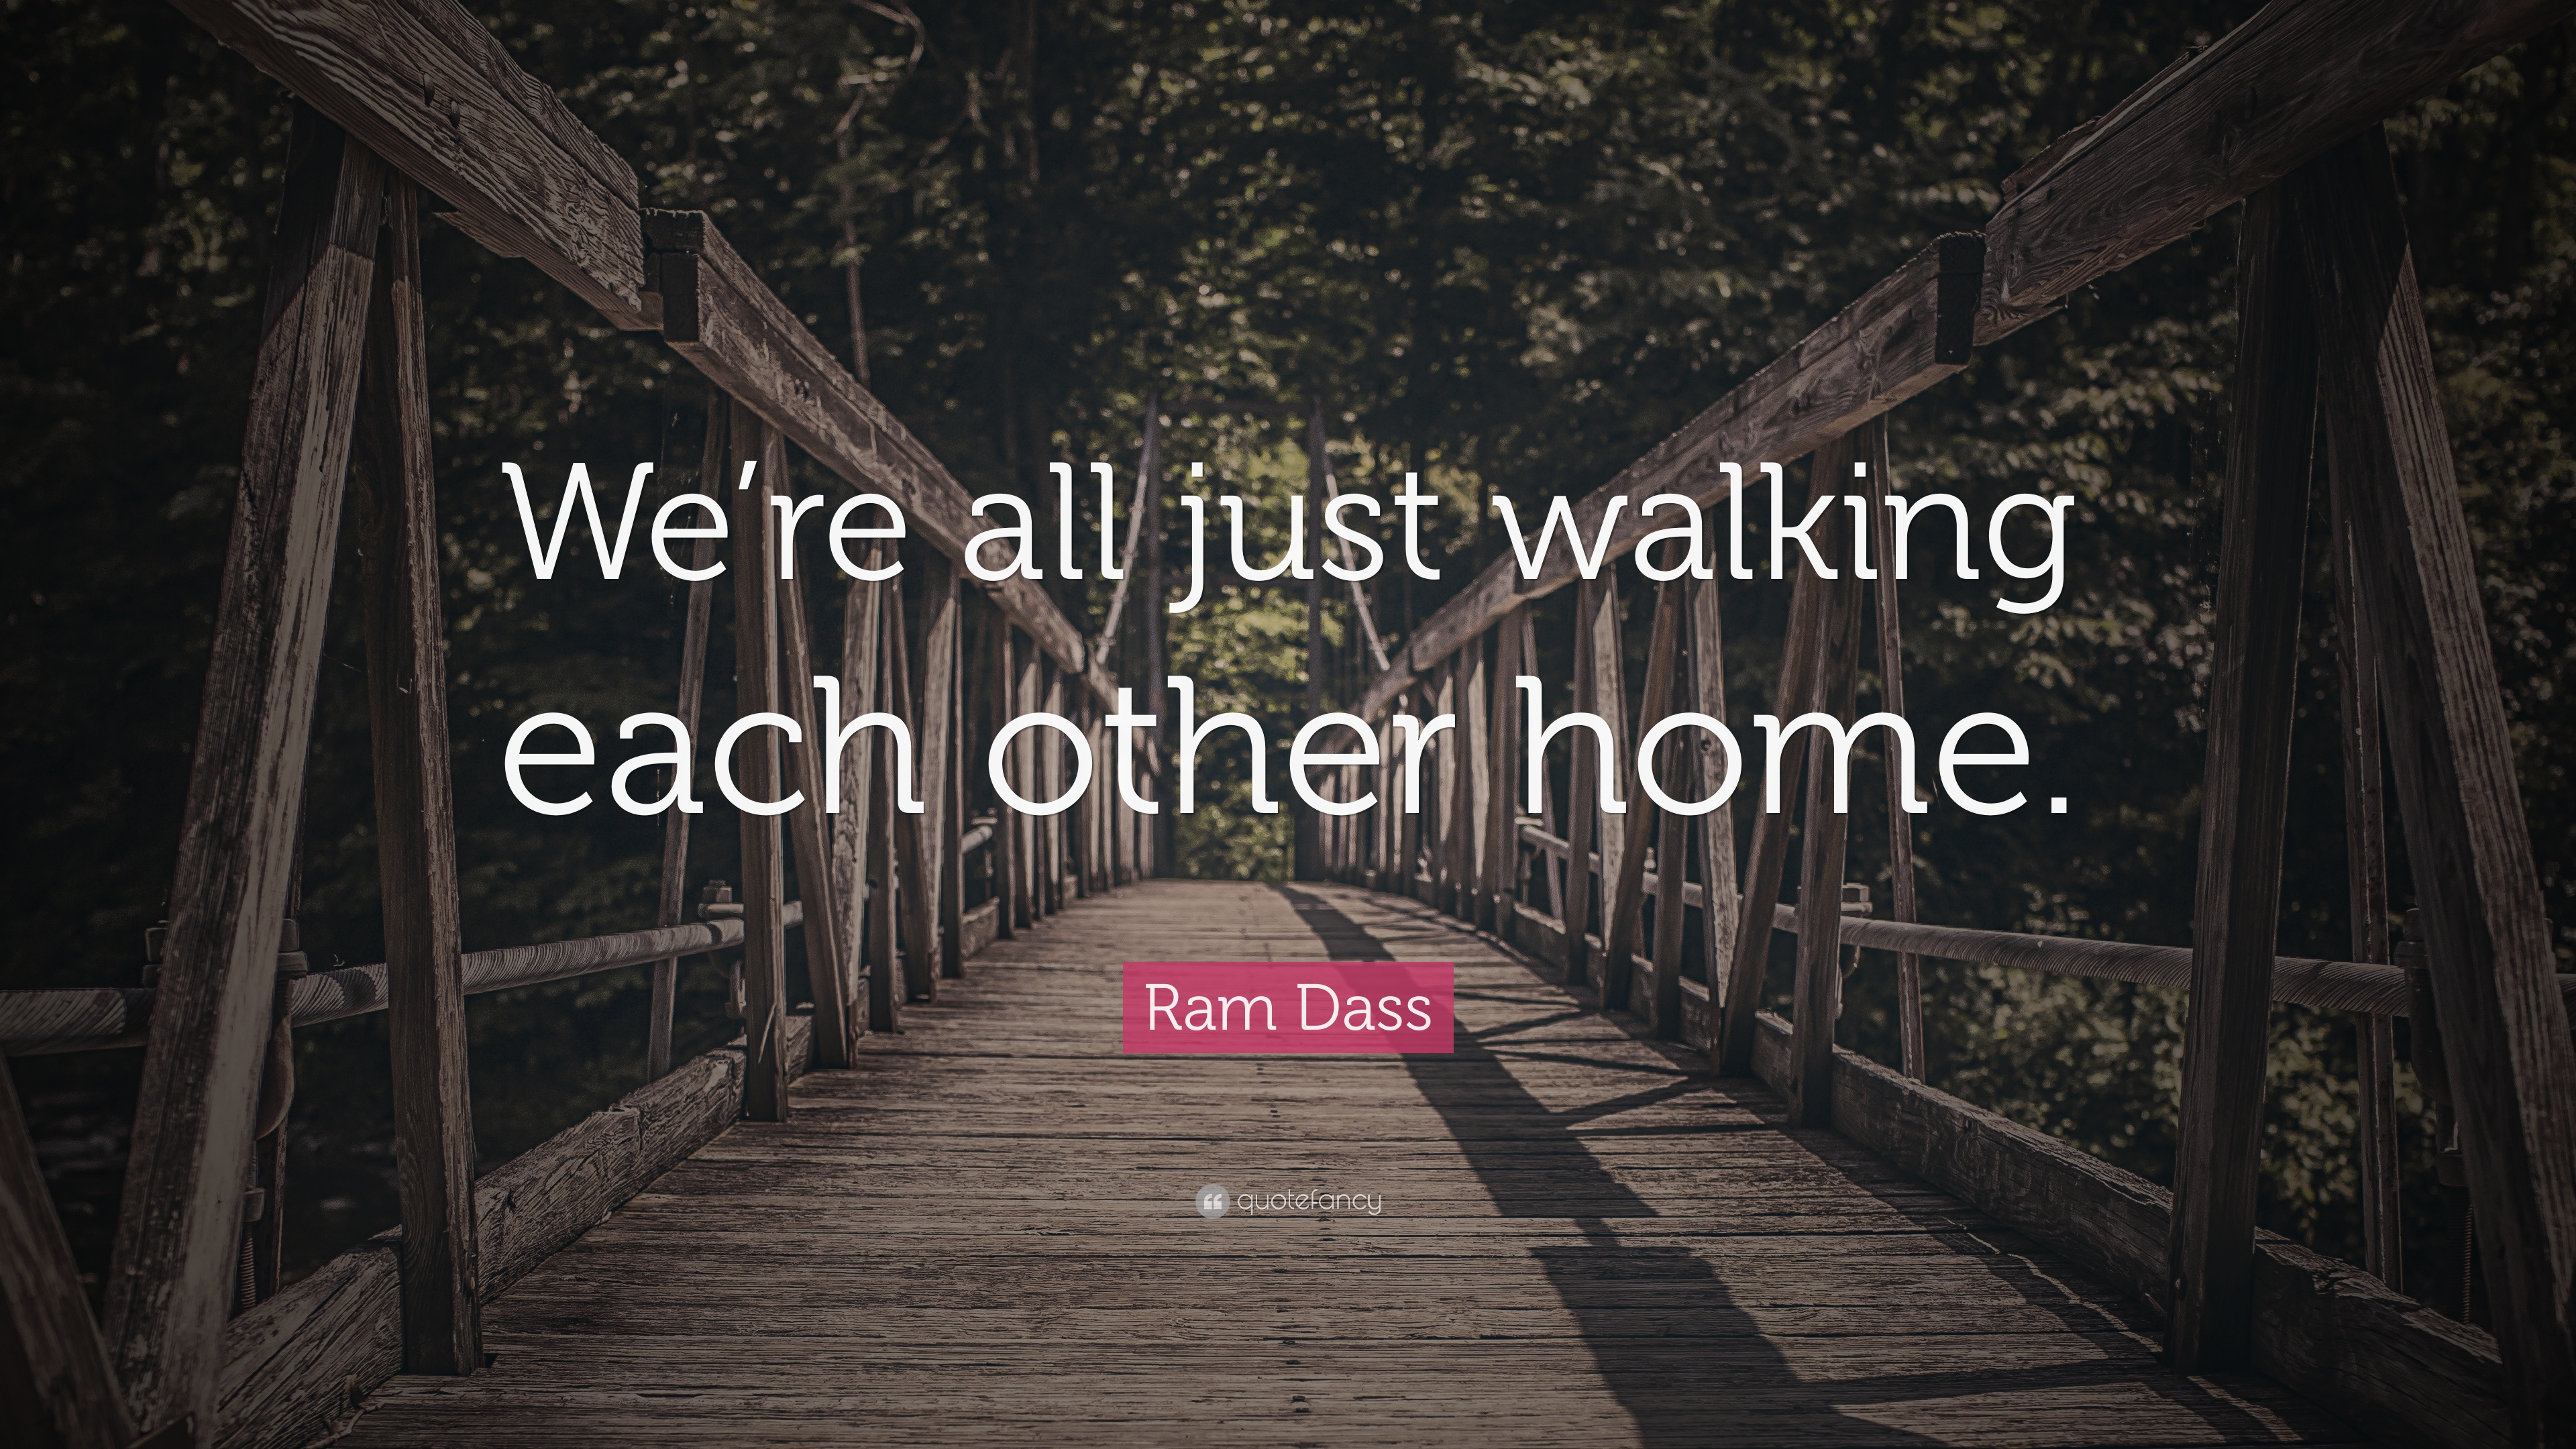 Rumi Quotes Wallpaper Ram Dass Quote We Re All Just Walking Each Other Home